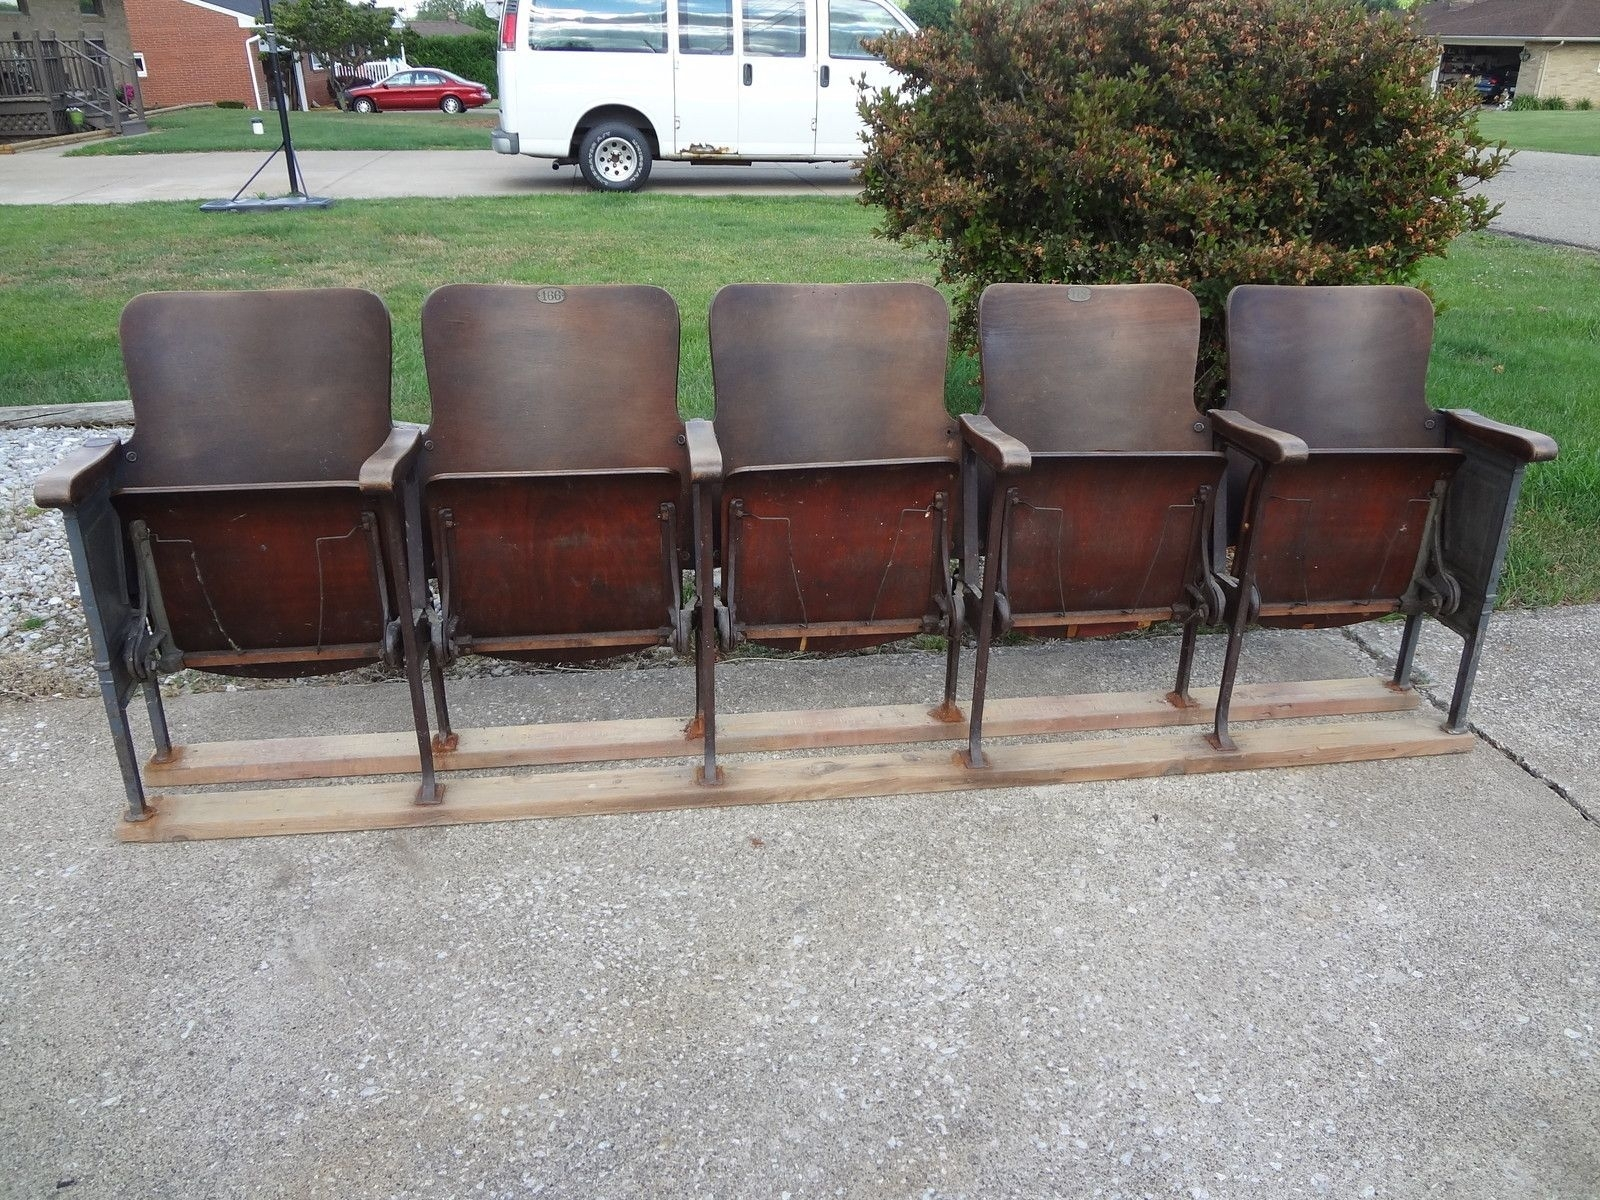 Vintage Movie Theatre Wood Seat Cast Iron Chair Auditorium Stadium Pertaining To 2017 Bale 6 Piece Dining Sets With Dom Side Chairs (Image 19 of 20)